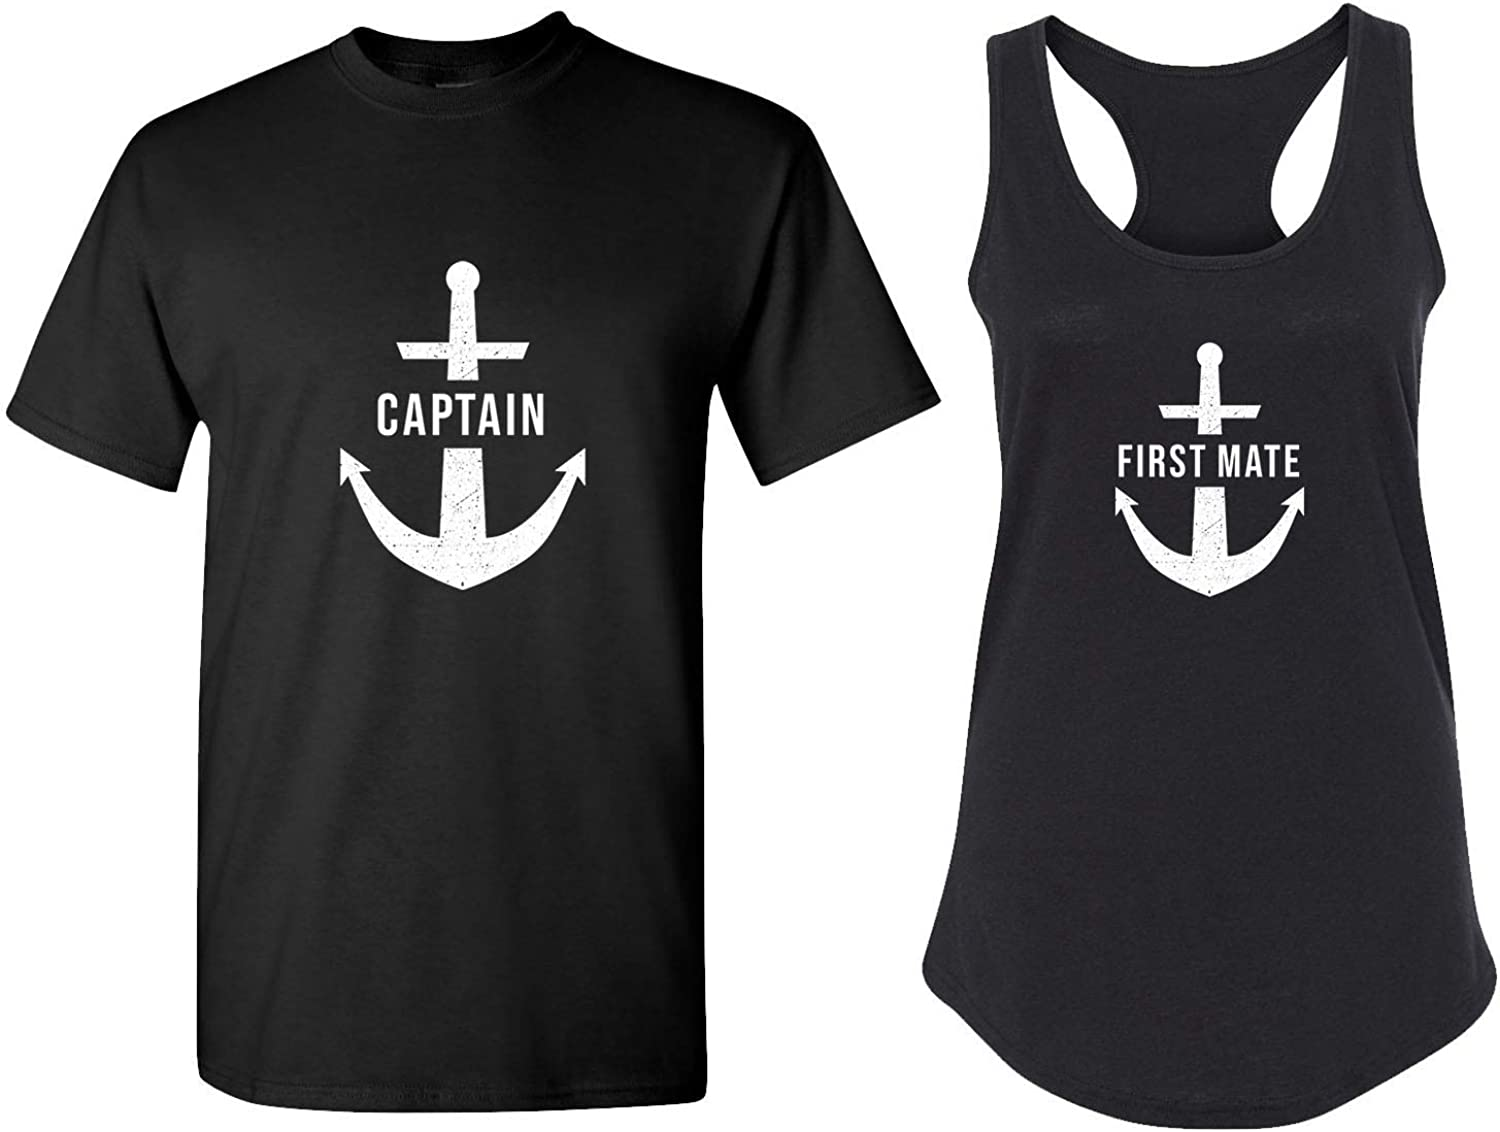 Cool Matching Couple Shirts - Anchor, Sail & Captain Theme Racerback Tank Tops